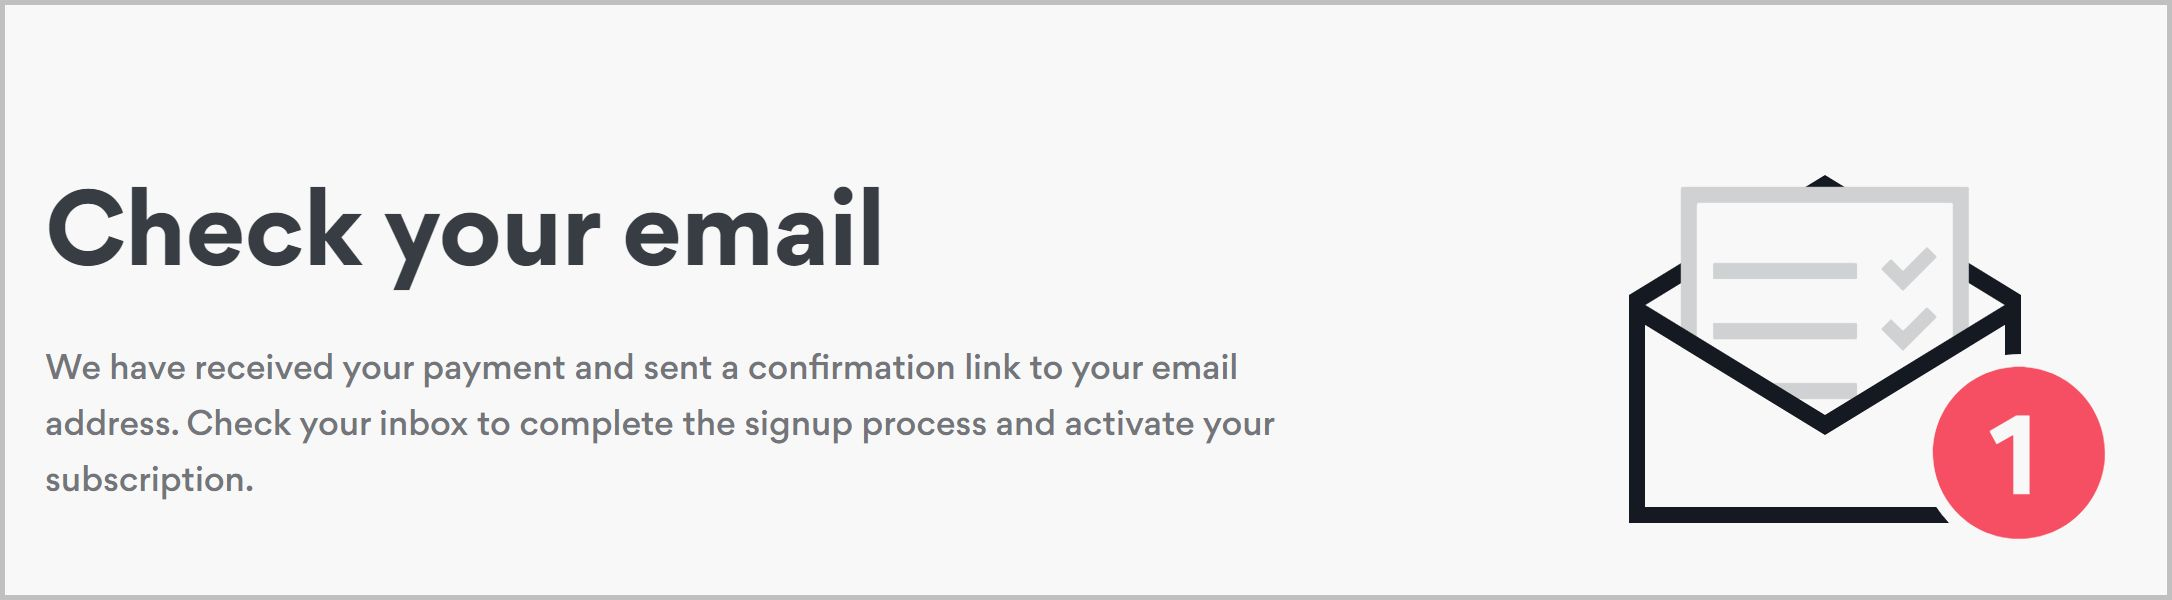 Email sign up screenshot